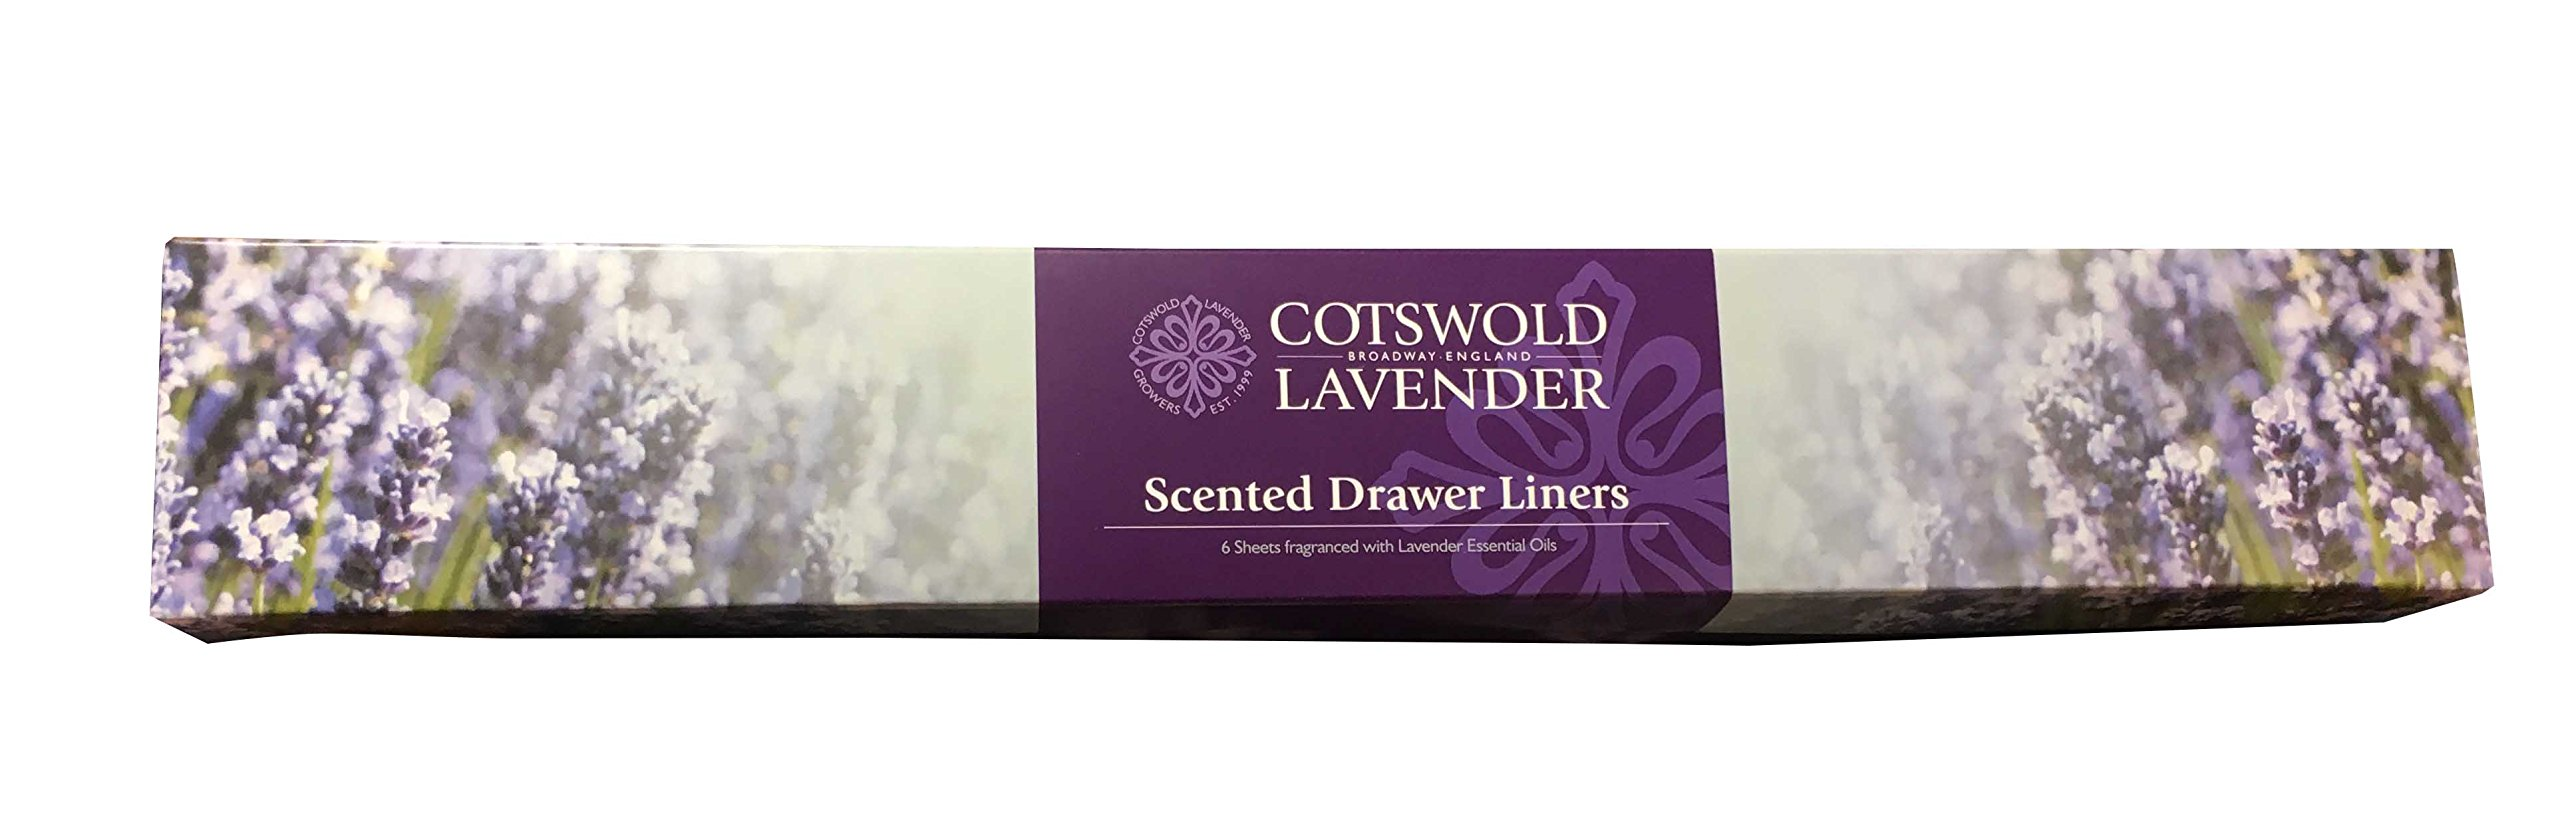 Scented Drawer Liners -6 Sheets fragranced with Lavender Essential Oils - 220grams